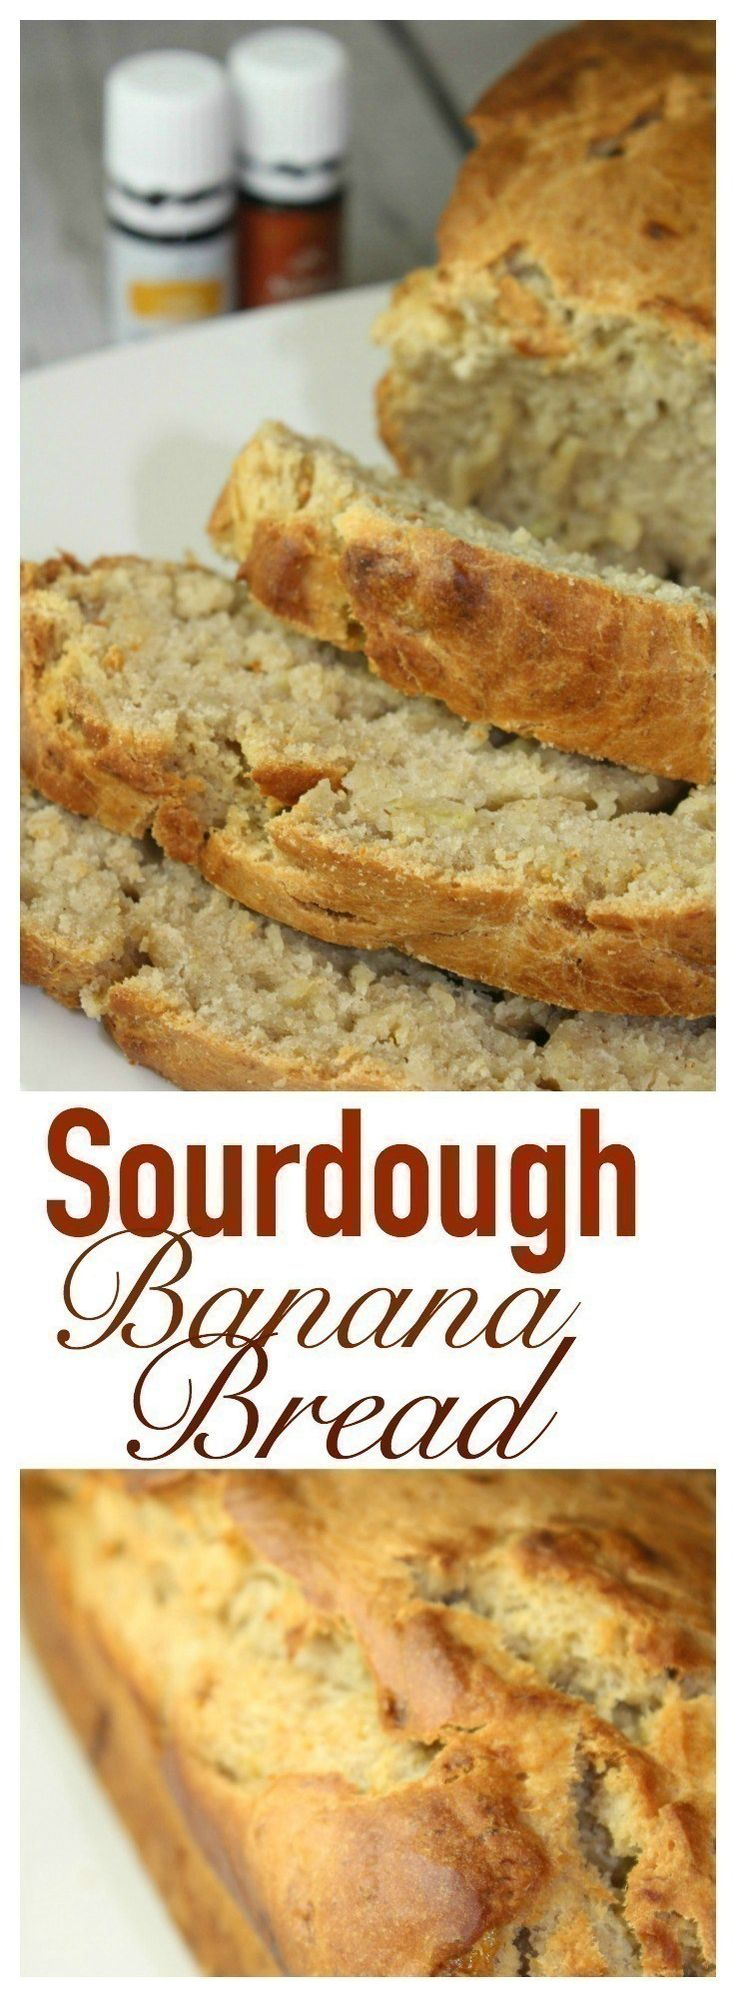 Sourdough Banana Bread is a great way to use up an